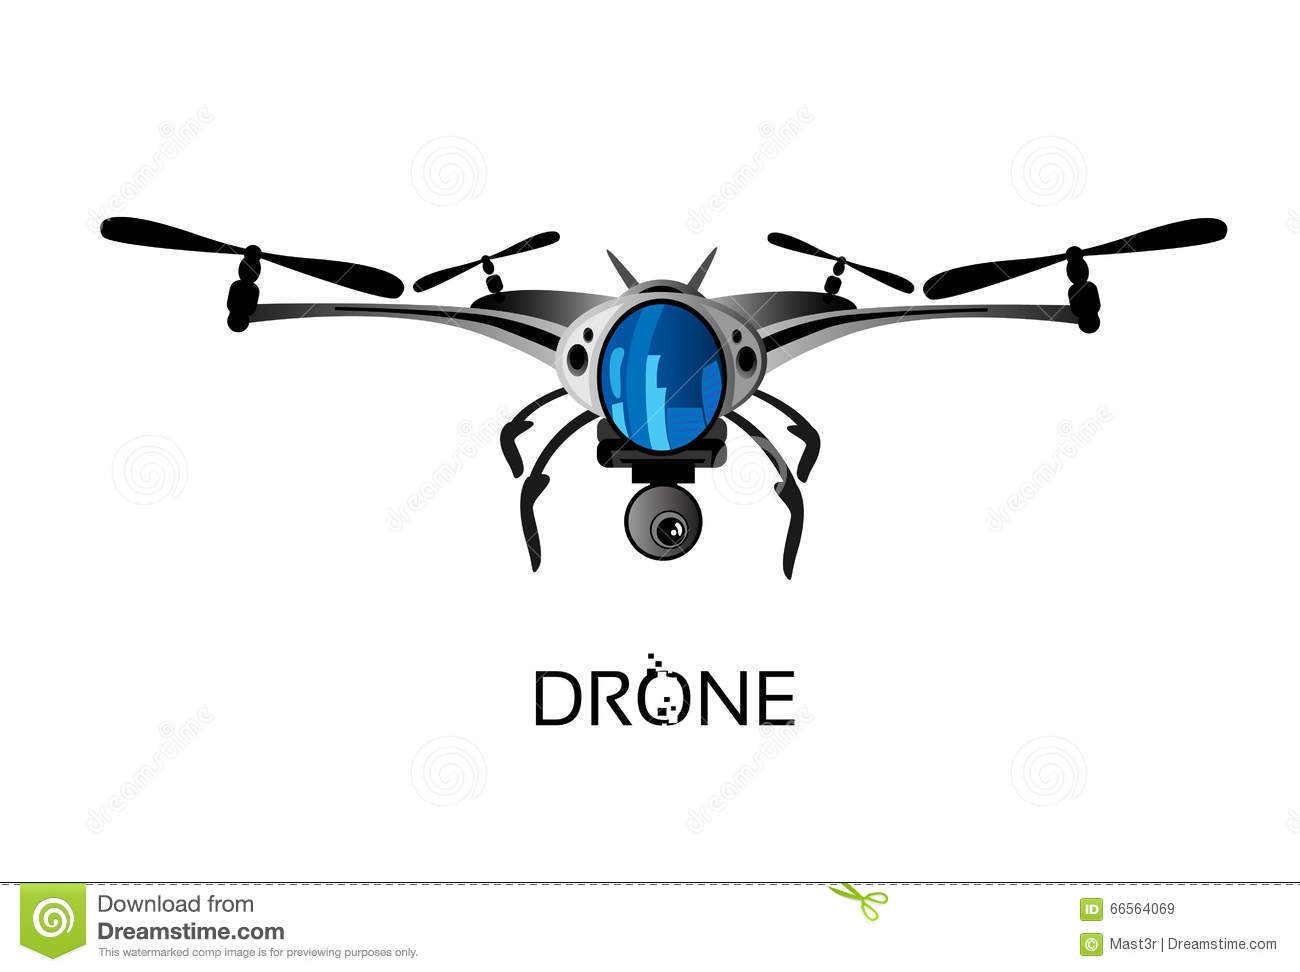 remote copter with camera with Stock Illustration Drone Flying Air Quadrocopter Logo Icon Vector Illustration Image66564069 on 32564139015 additionally Drone Cameras Fad Future Journalism Brands as well VR Drone NH 010 FPV WIFI Camera Mini Drone RC Quadcopter likewise Stock Illustration Drone Flying Air Quadrocopter Logo Icon Vector Illustration Image66564069 as well Jjrc H37 Foldable Pocket Selfie Drone Quadcopter Geediar 2 4g 4ch Elfie Mini Wifi Fpv Rc Quadcopter With High Hold Mode 0 3mp Selfie Camera.